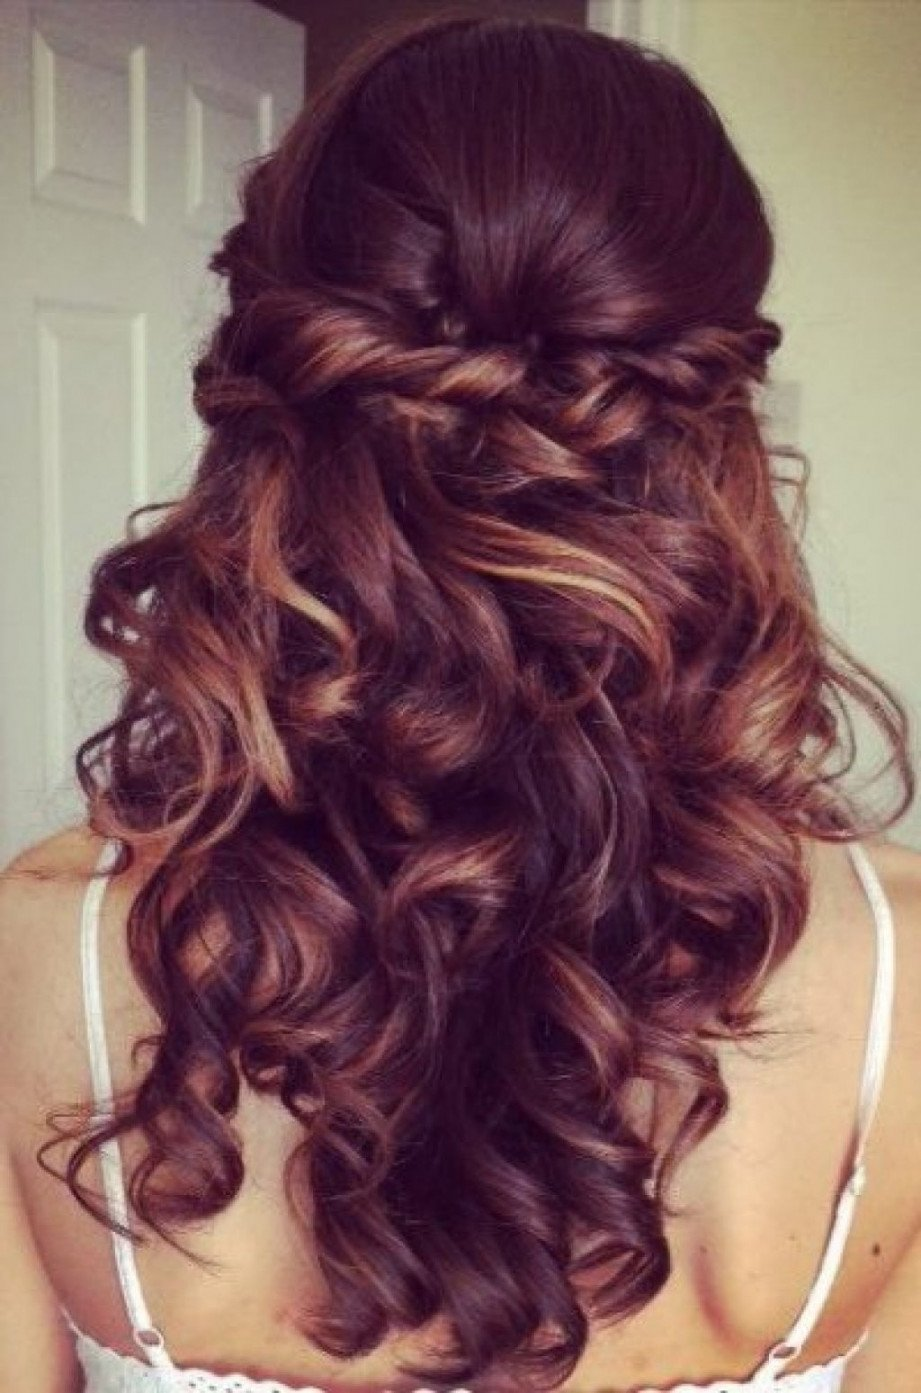 10 Most Recommended Homecoming Hair Ideas For Long Hair homecoming hairstyles for long hair waterfall braid with mermaid